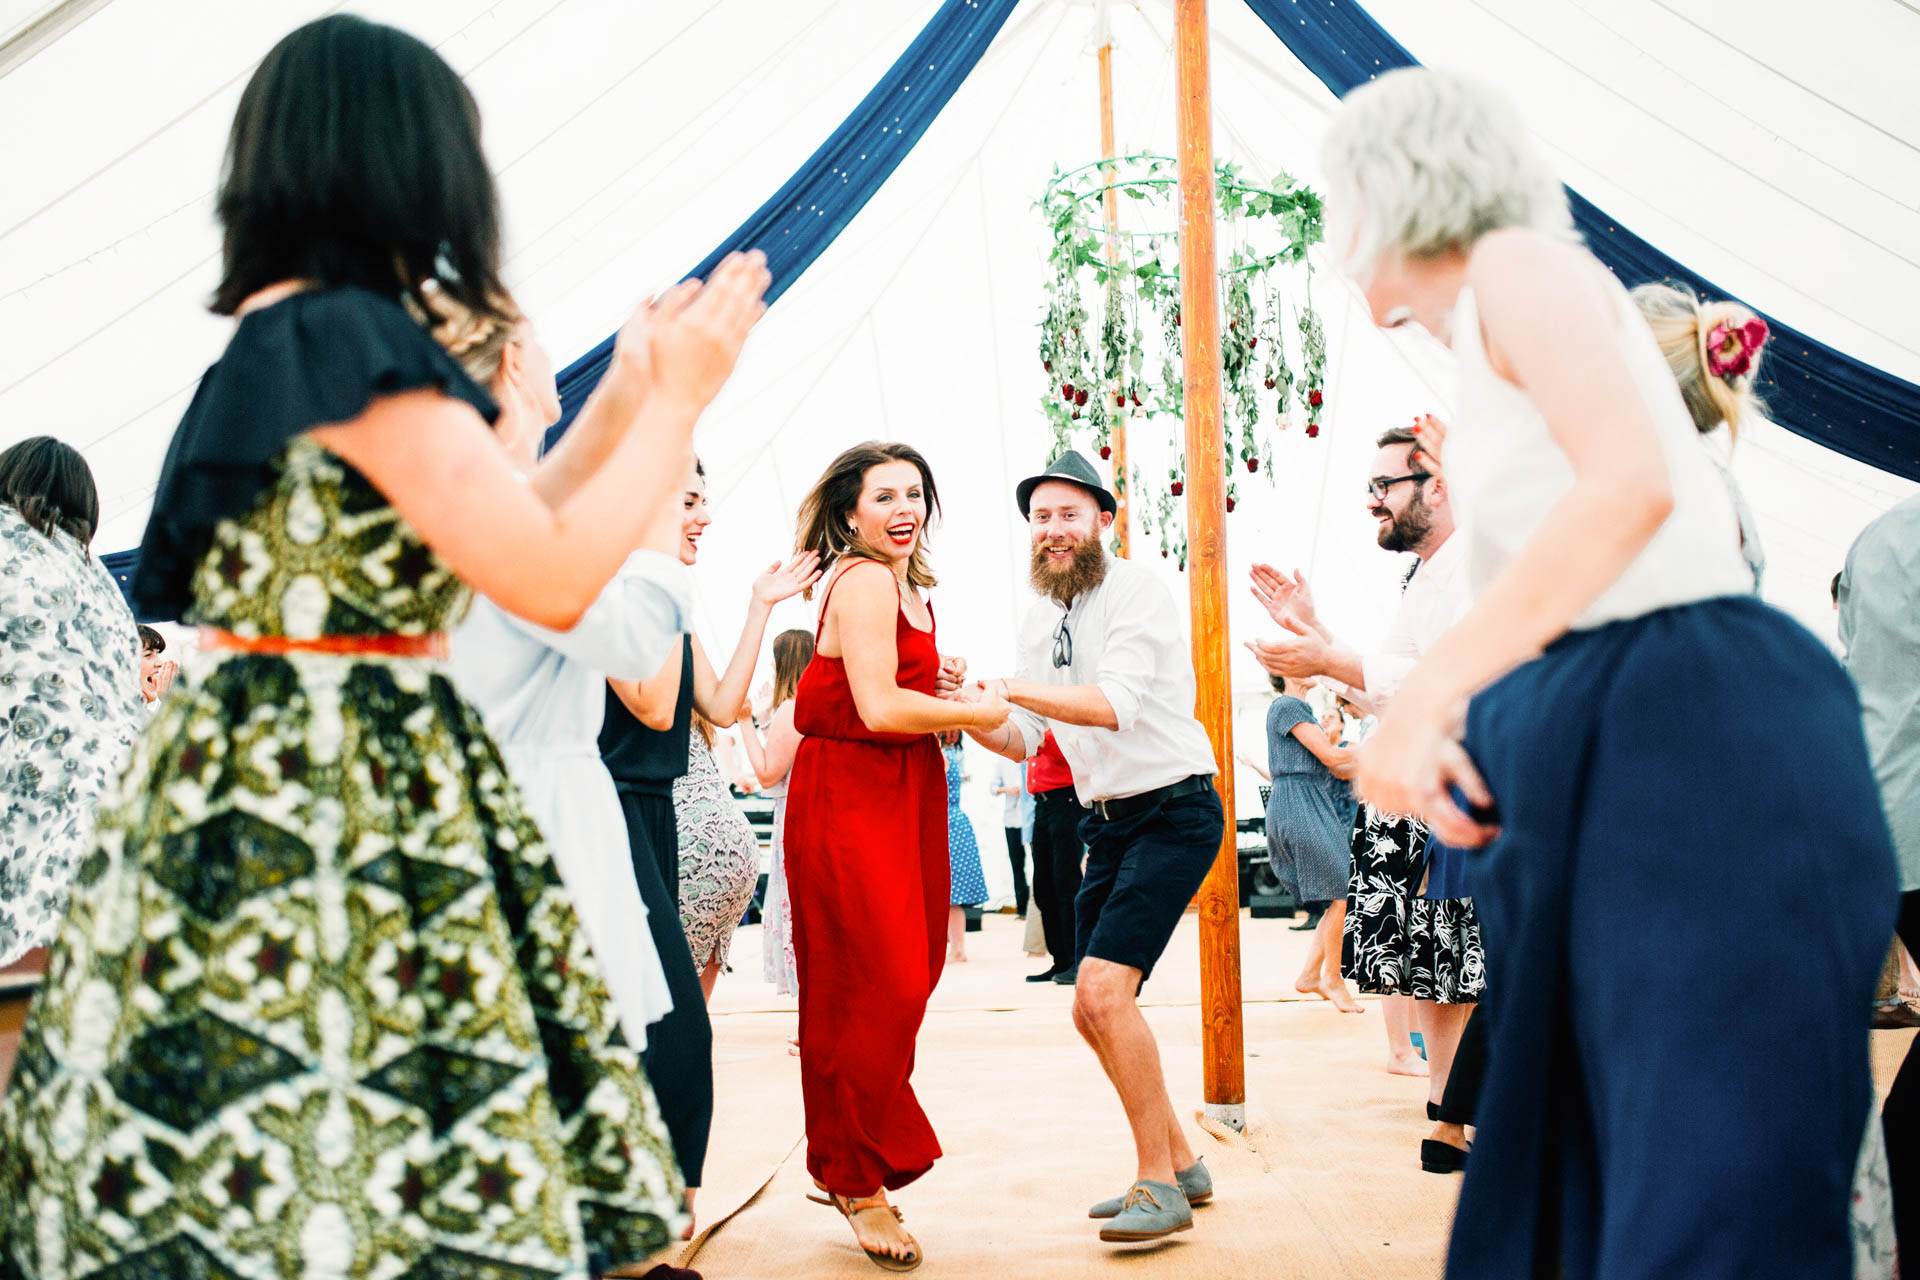 Best wedding photography 2016 - guests dancing in tent